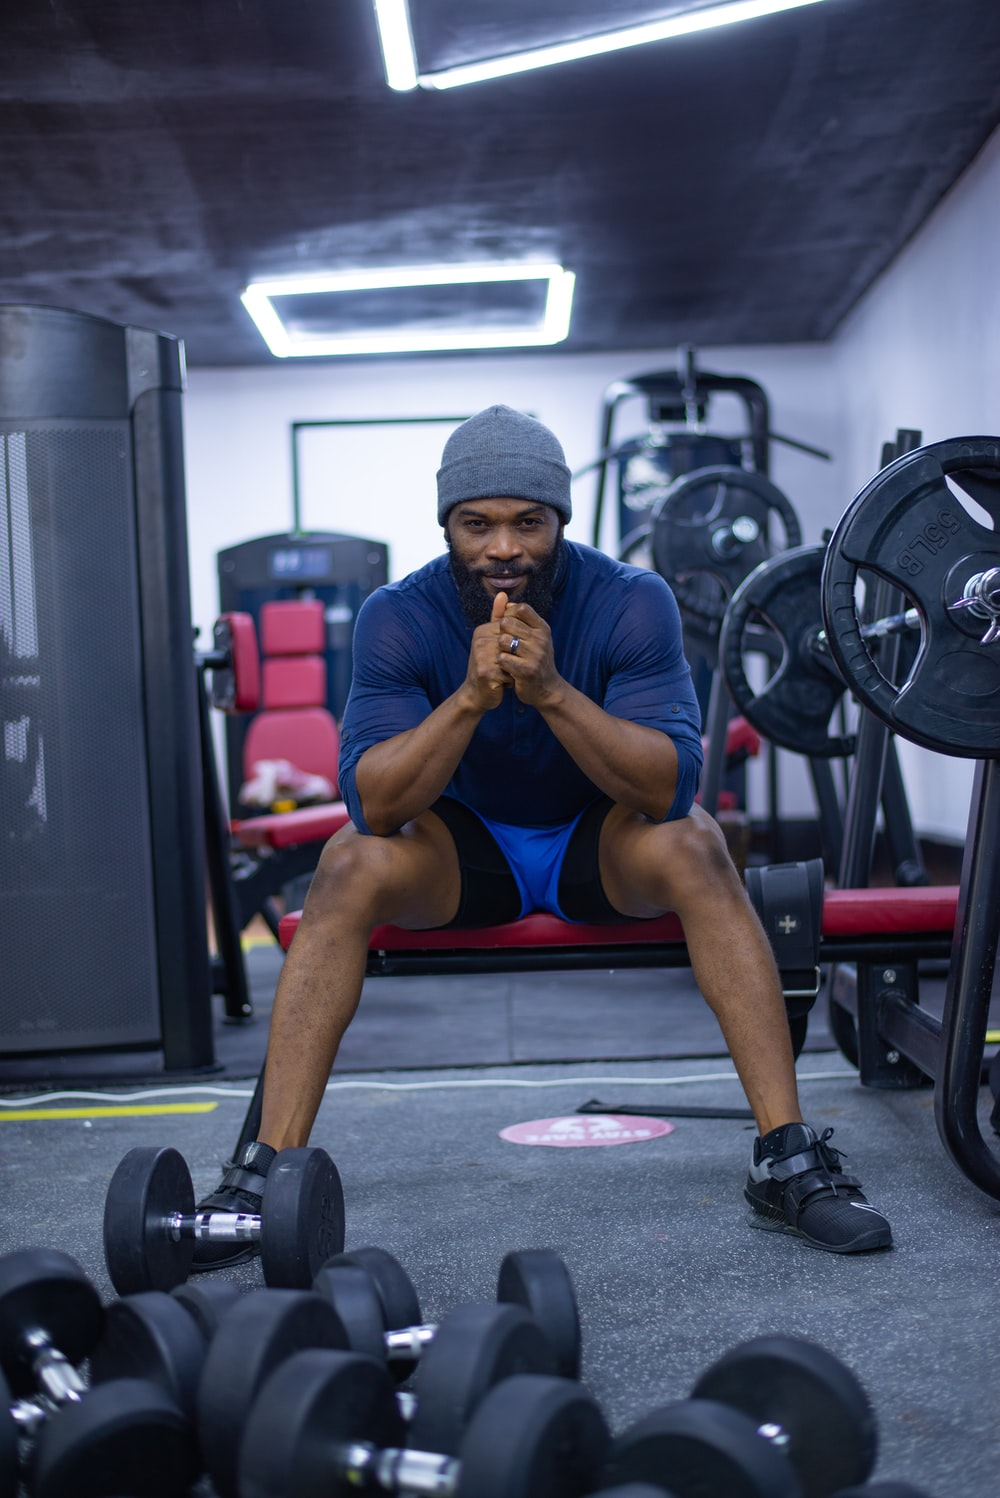 man in blue tank top and blue shorts sitting on black and red exercise equipment